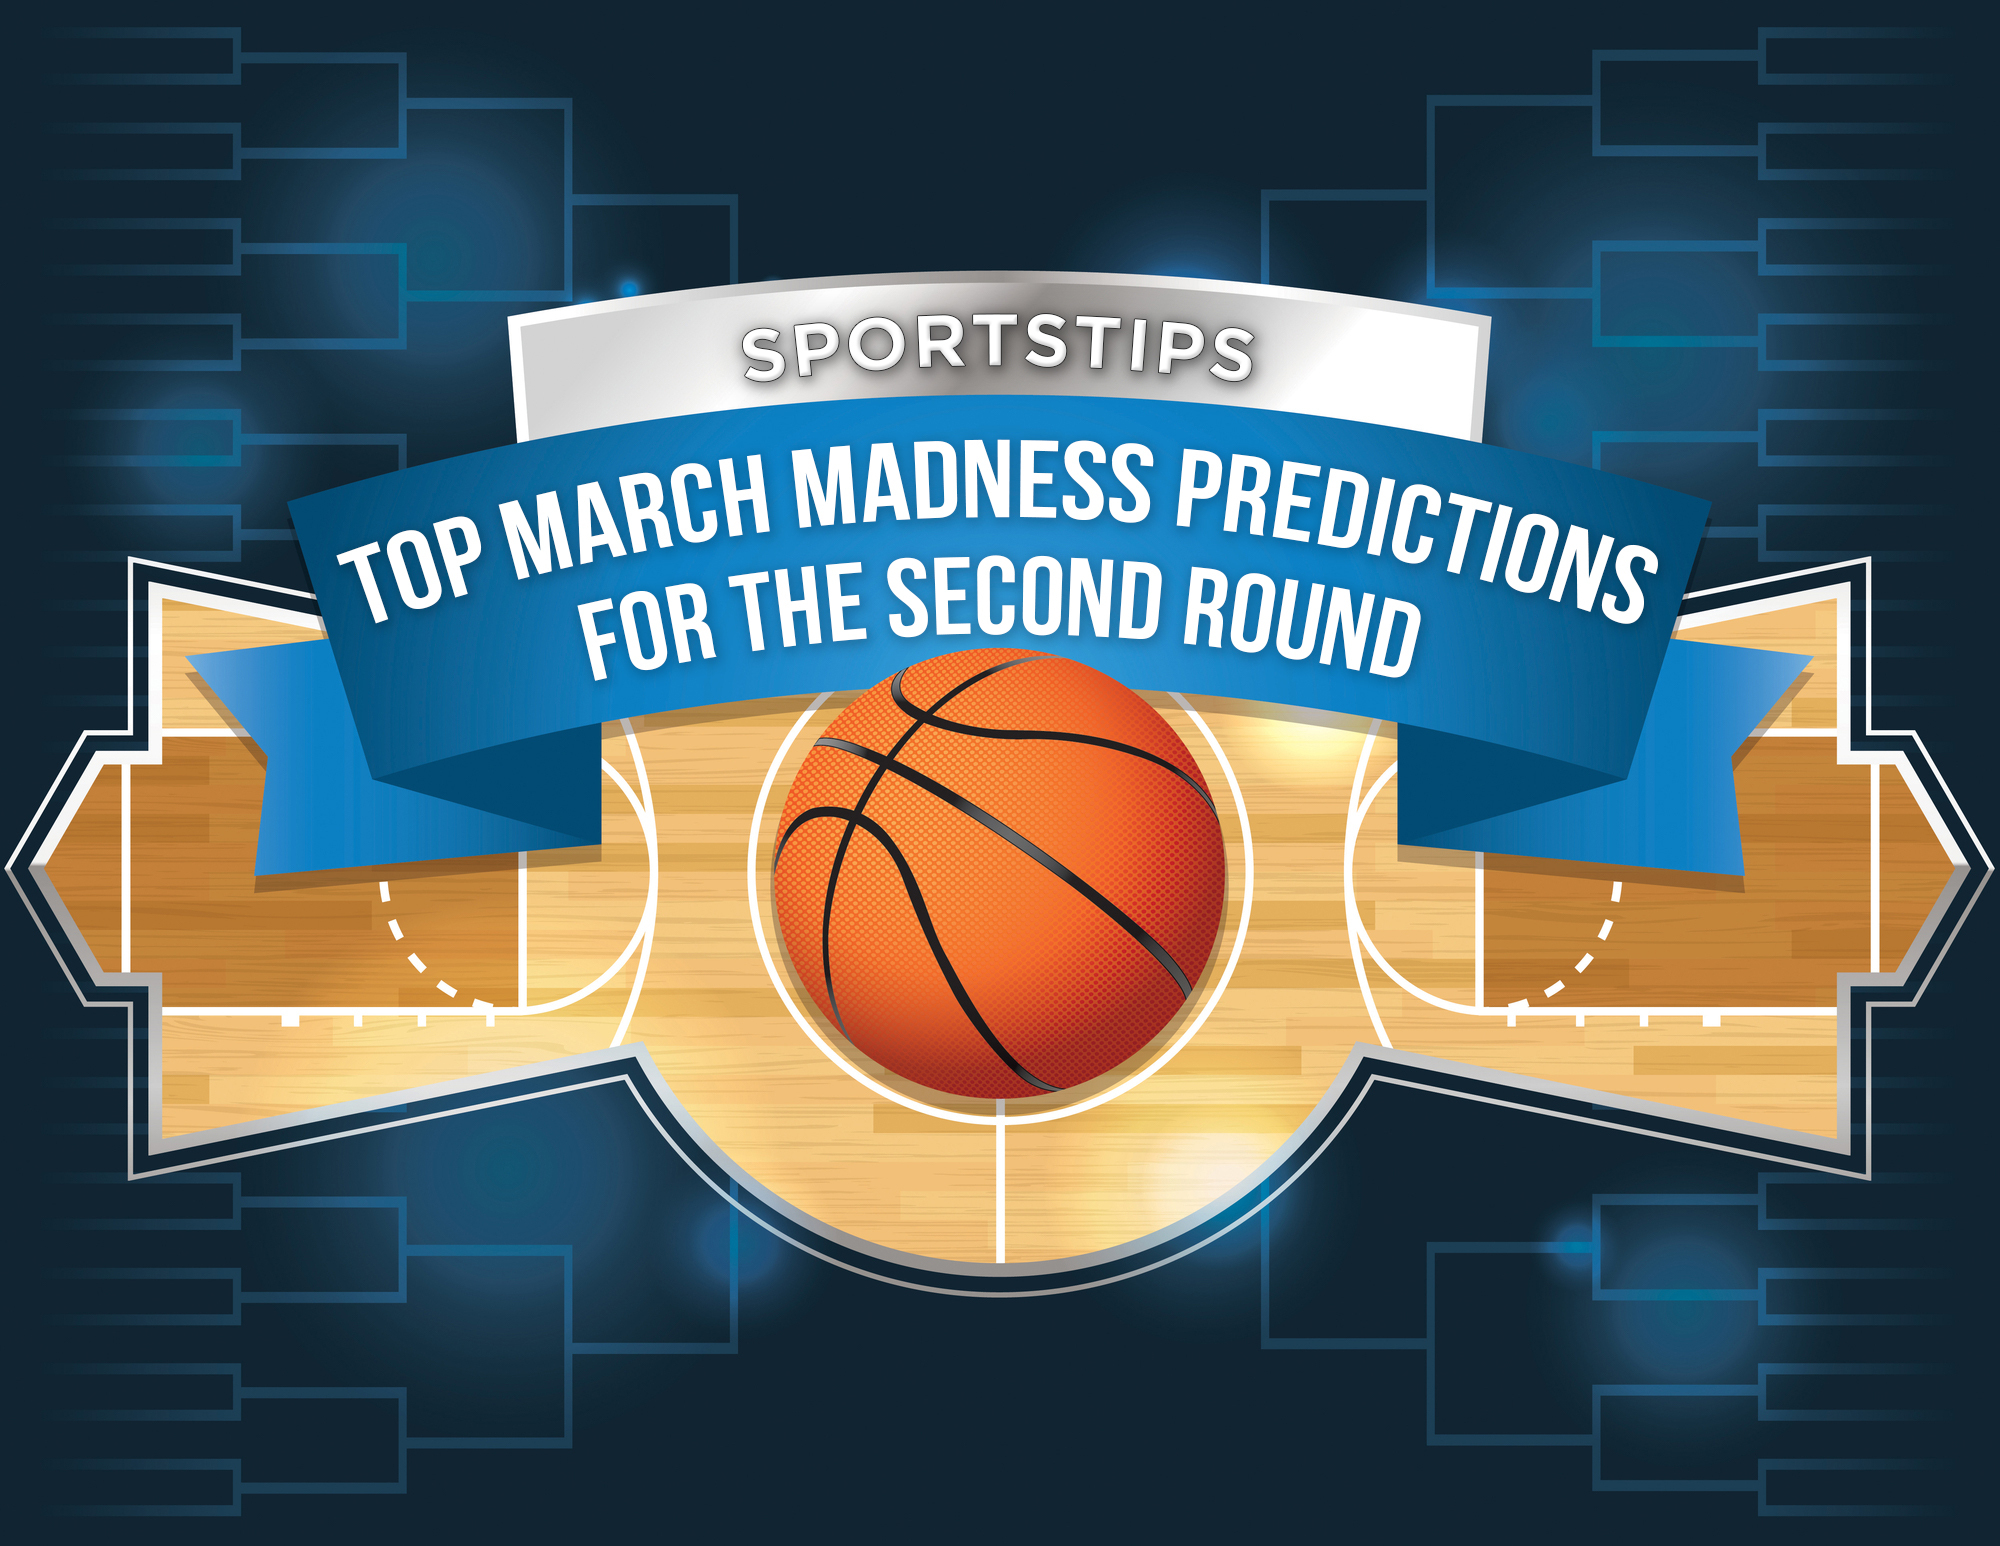 Top March Madness Predictions for Second Round 2021: Midwest Bracket